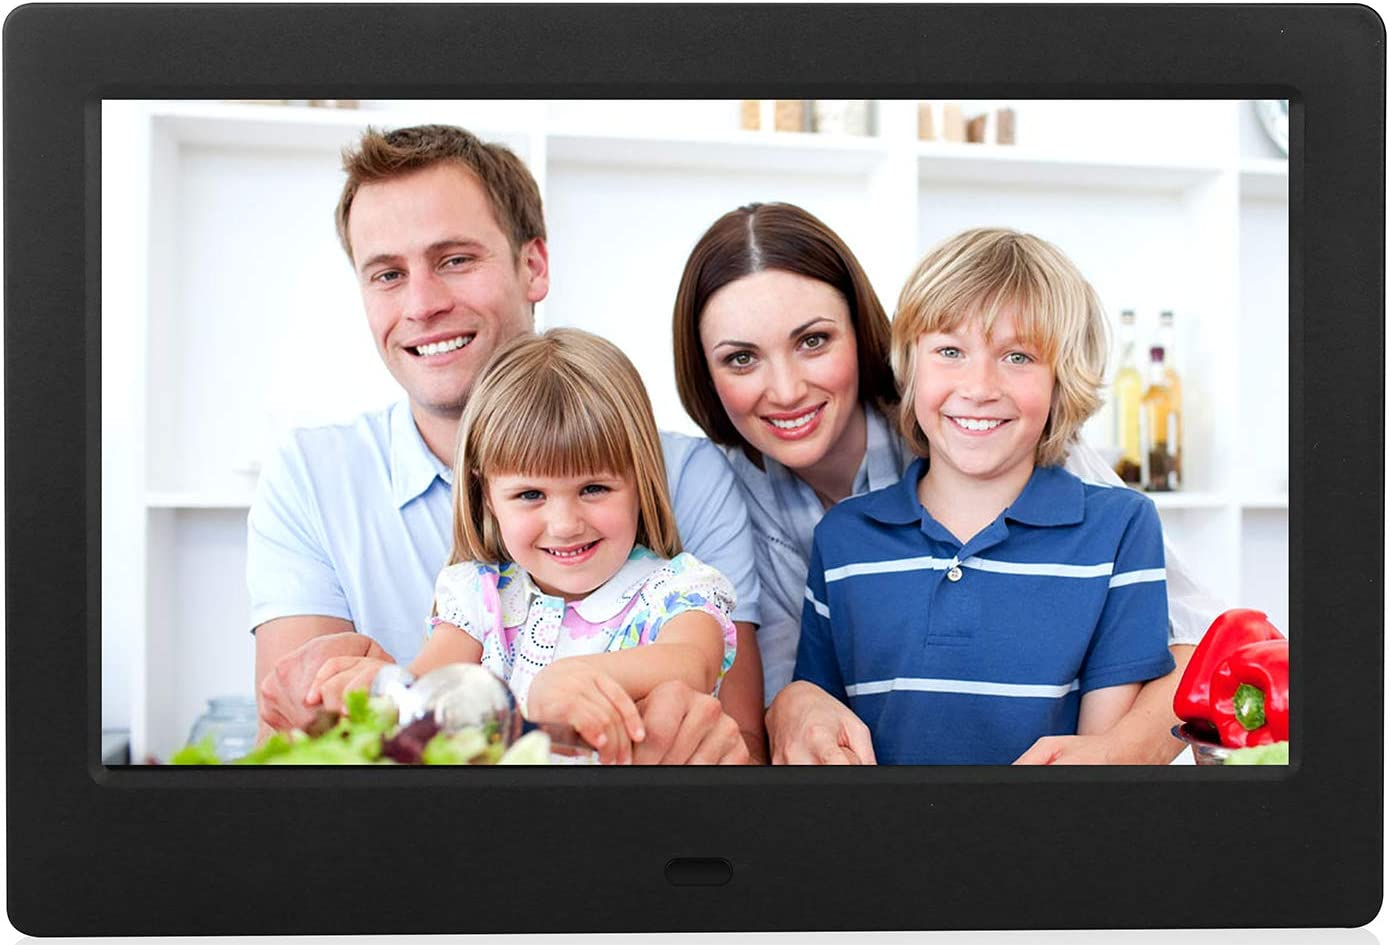 Advance 8 Inch Digital Picture Frame